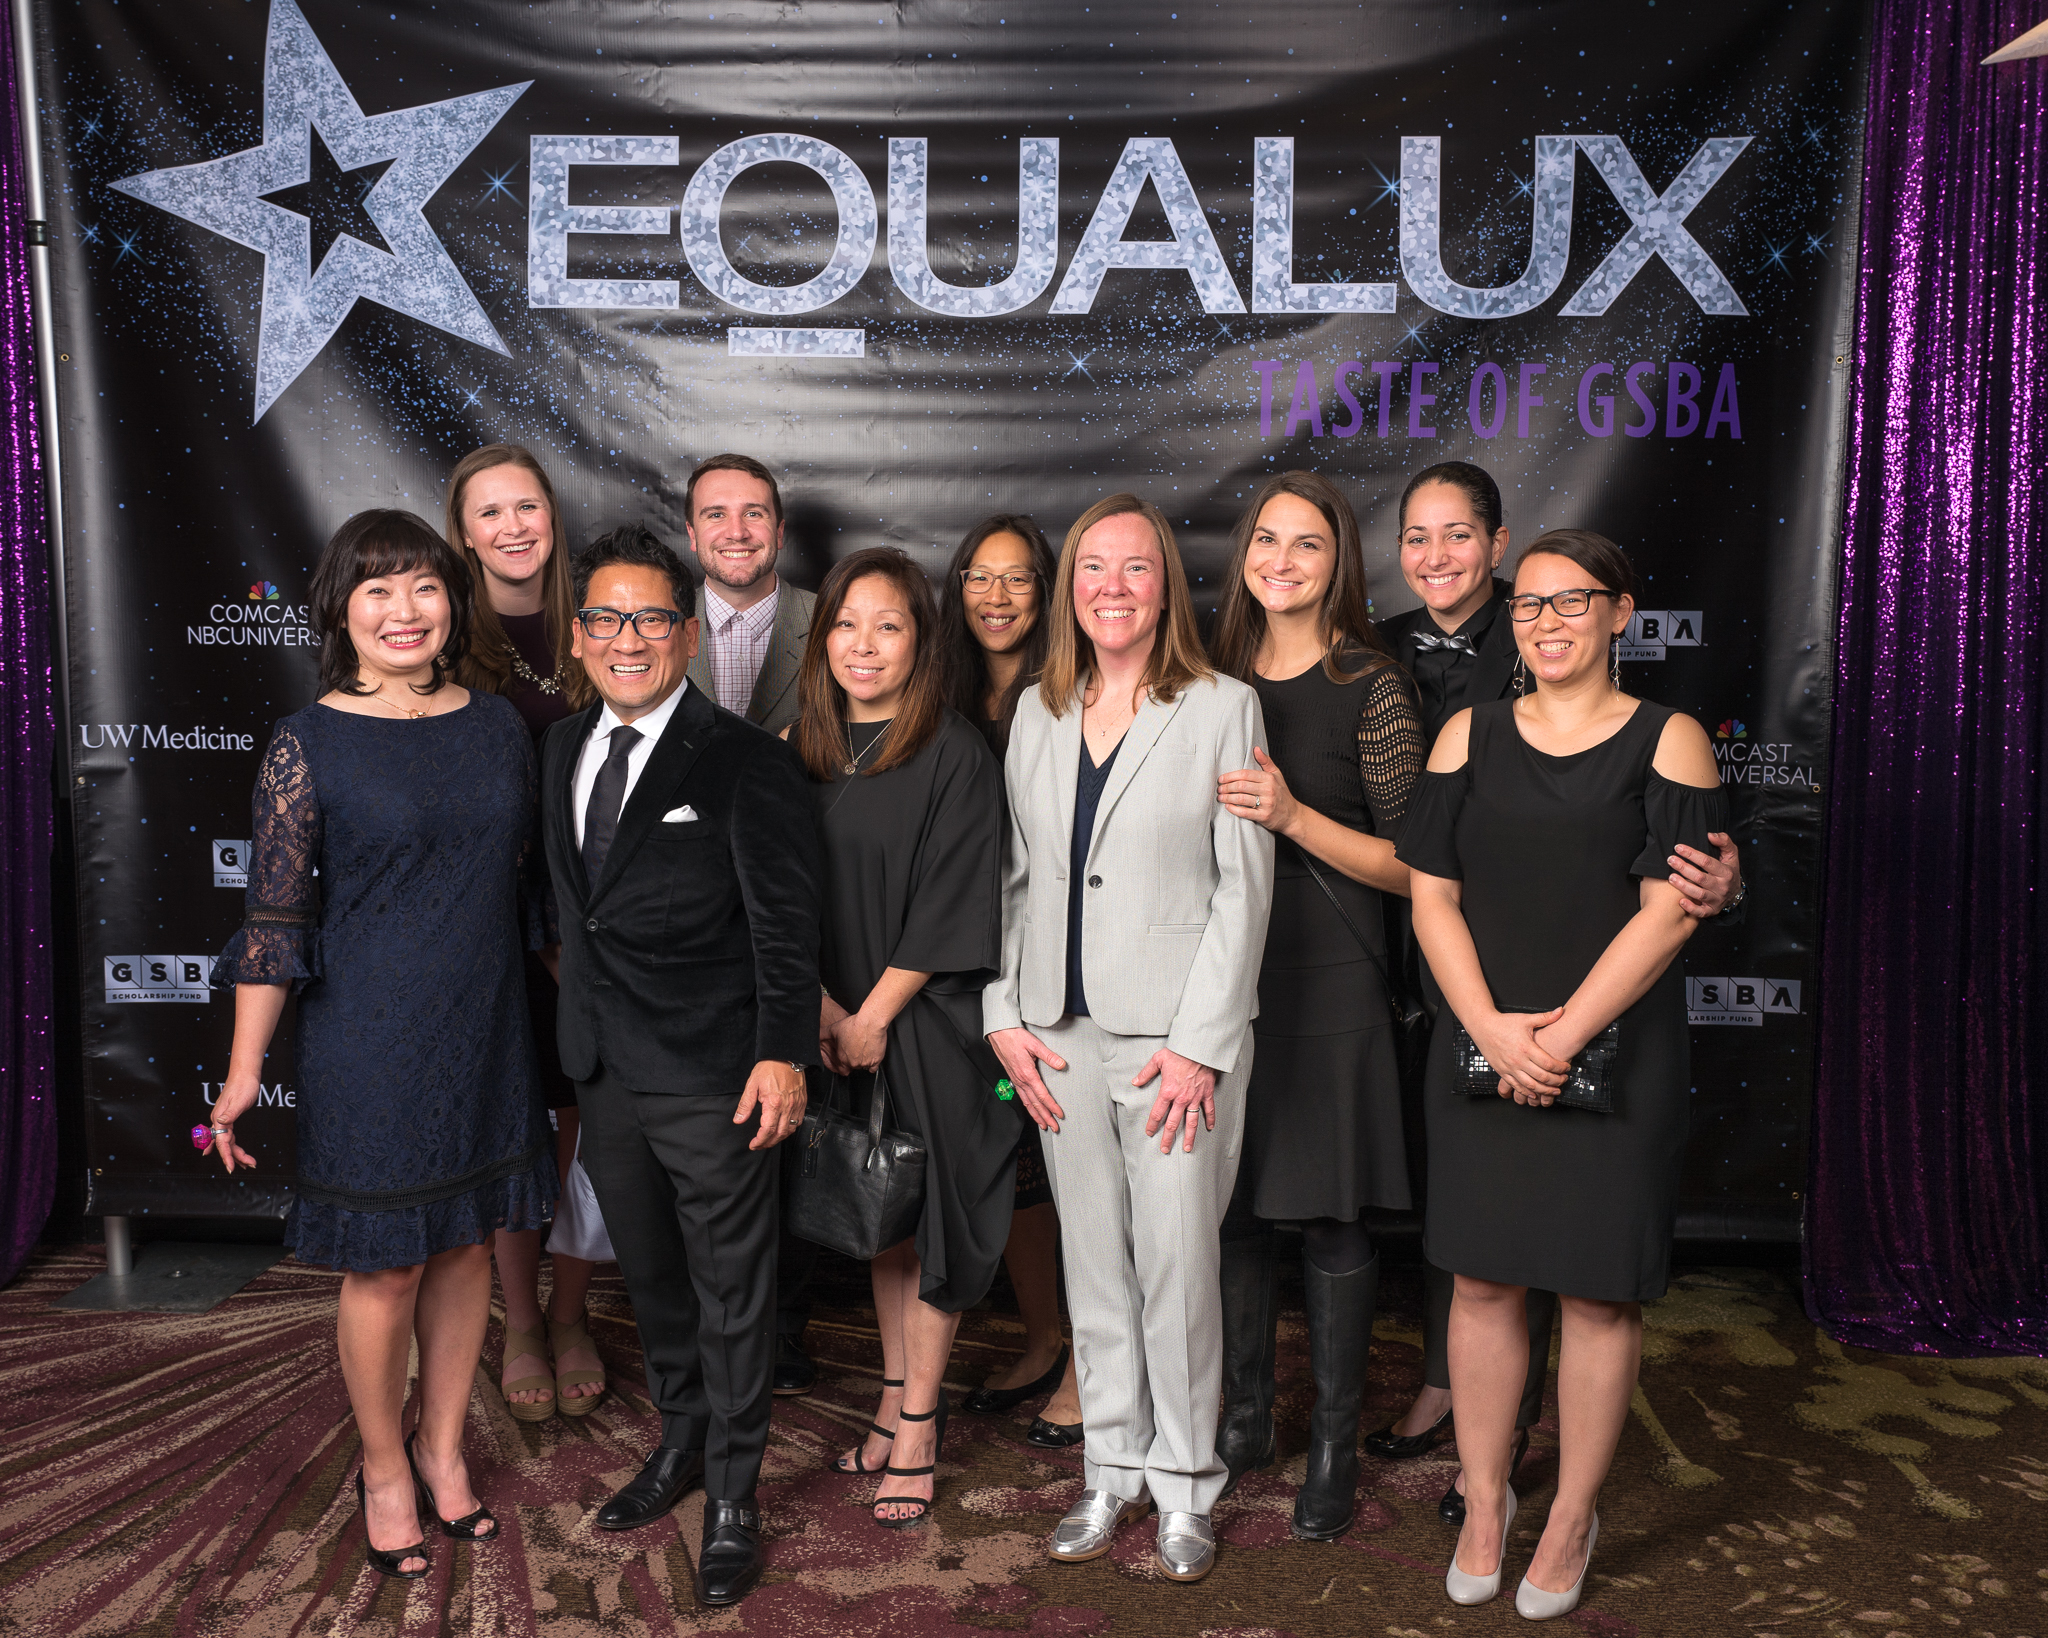 111718_GSBA EQUALUX at The Westin Seattle (Credit- Nate Gowdy)-180.jpg